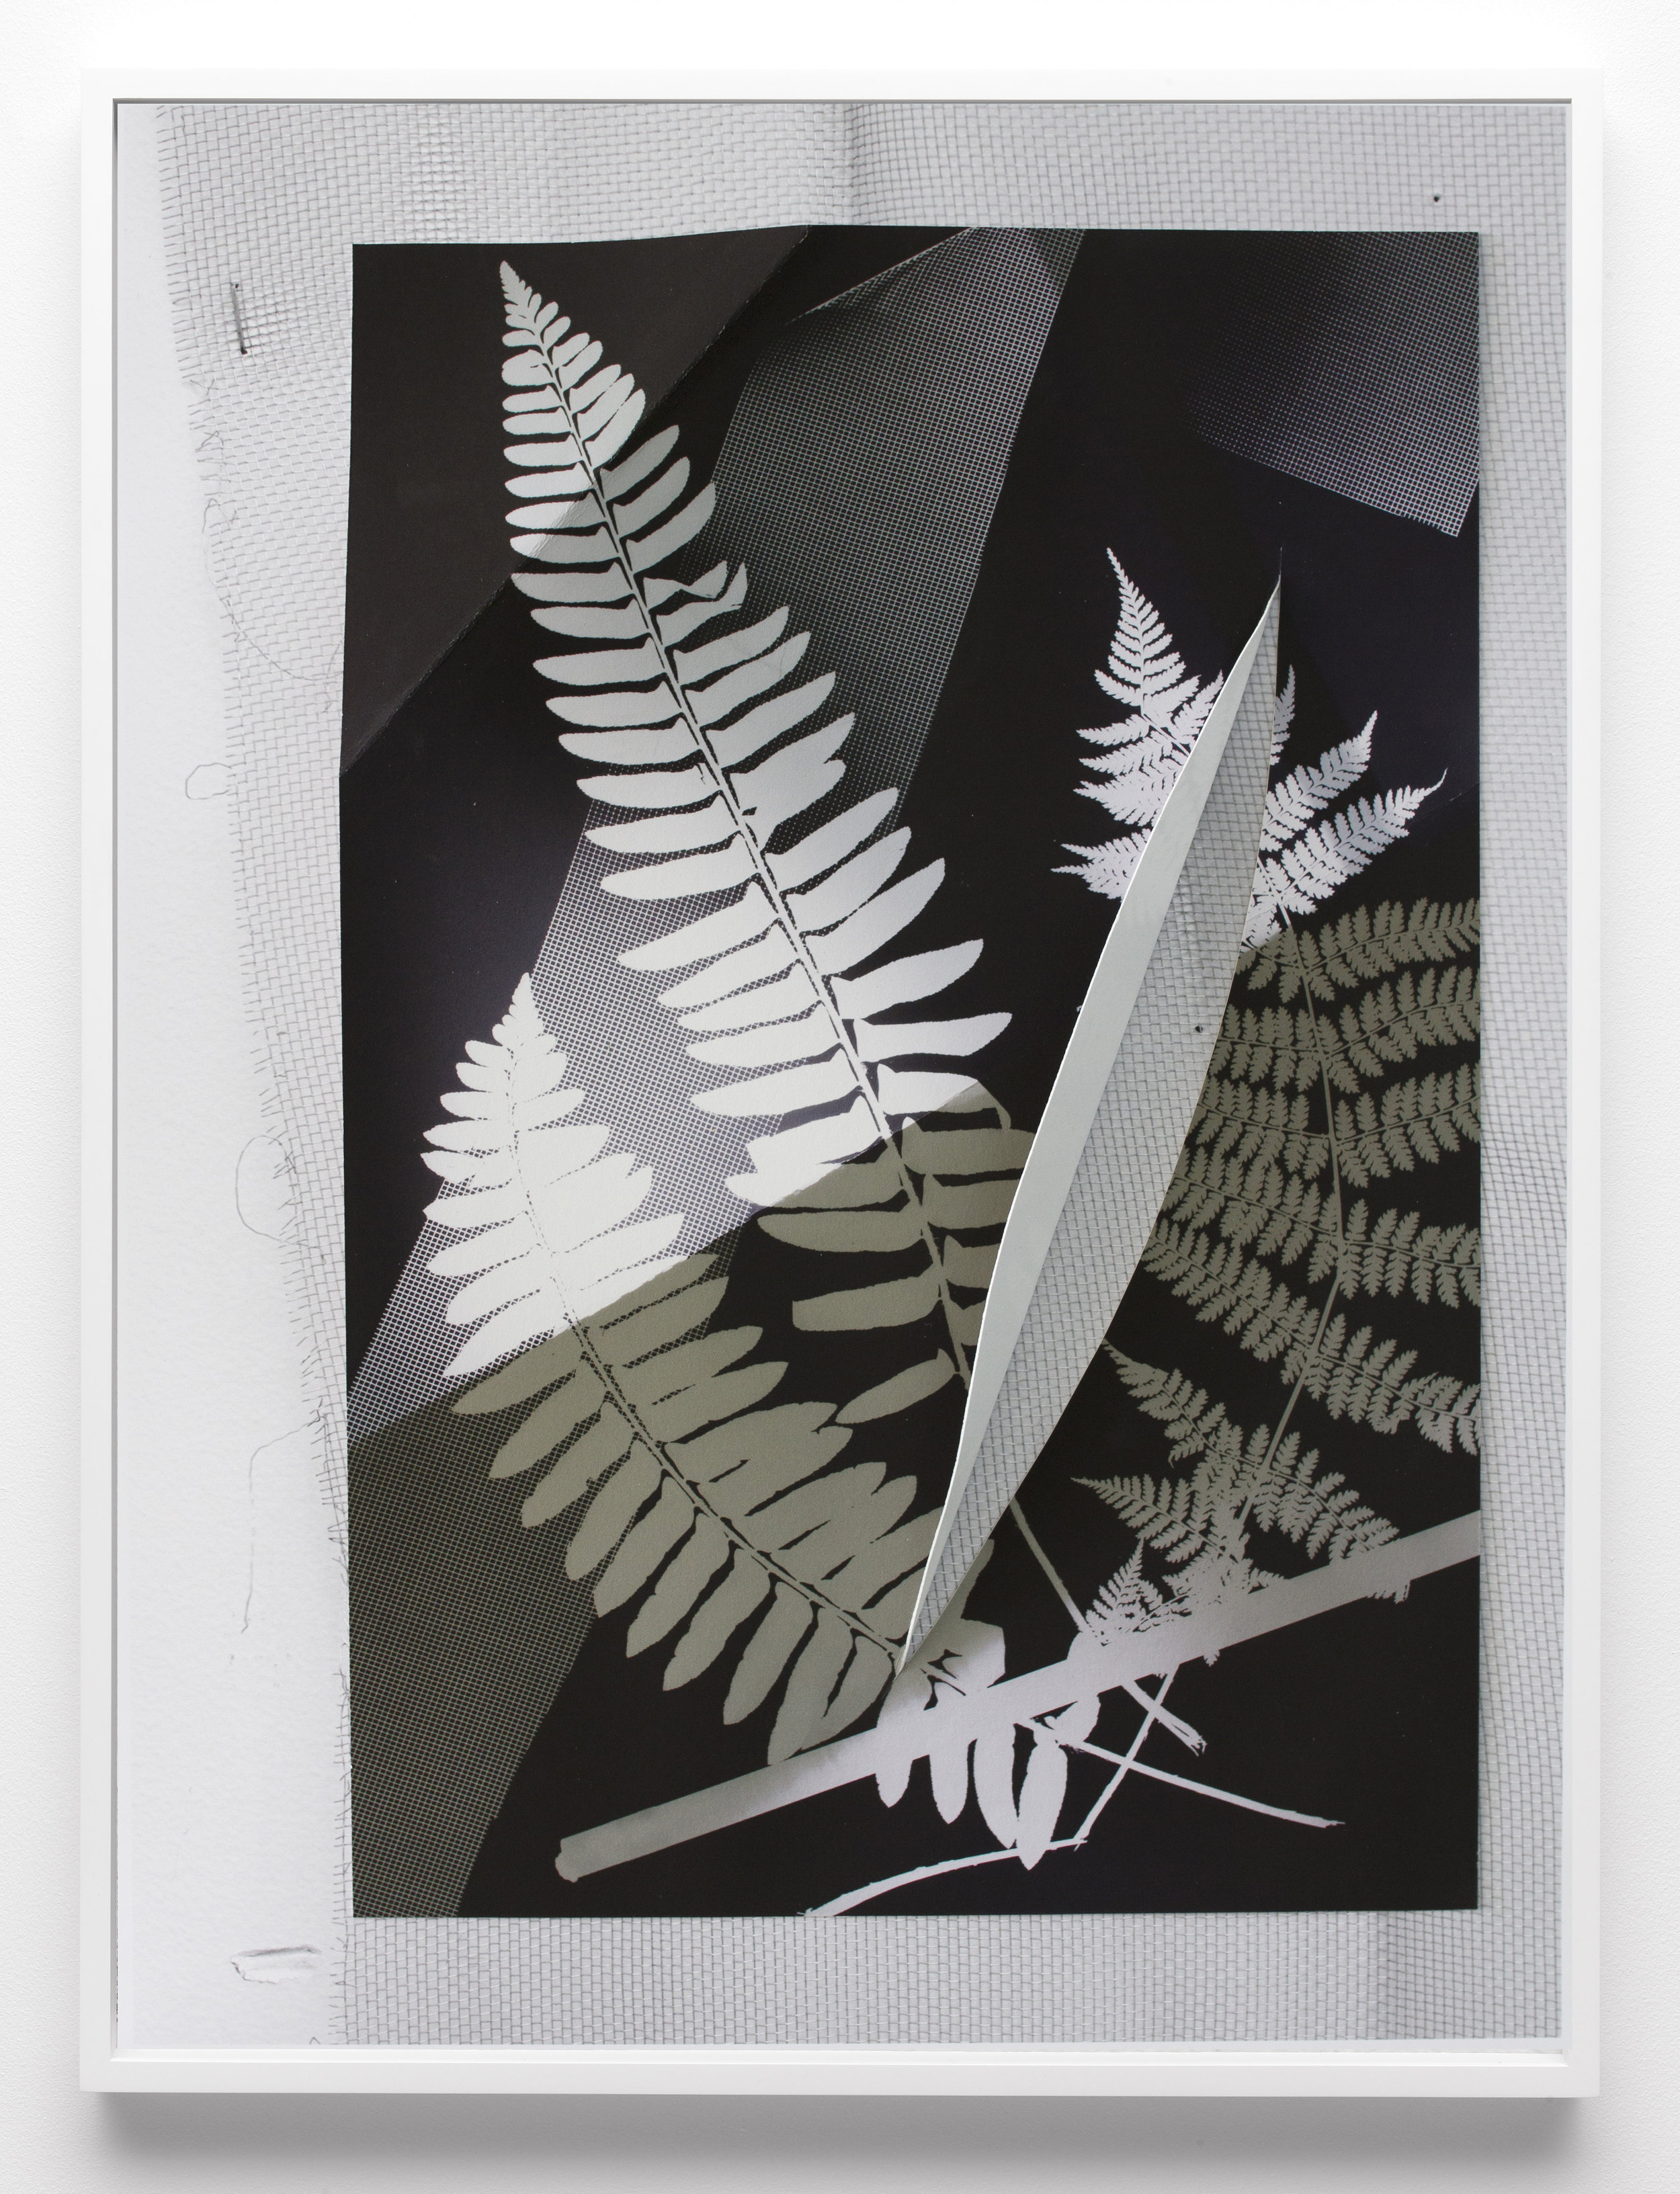 "Re-Photogram New Hampshire New York (Curve Cut), 2018  Two archival inkjet prints, framed, 32"" x 24"""